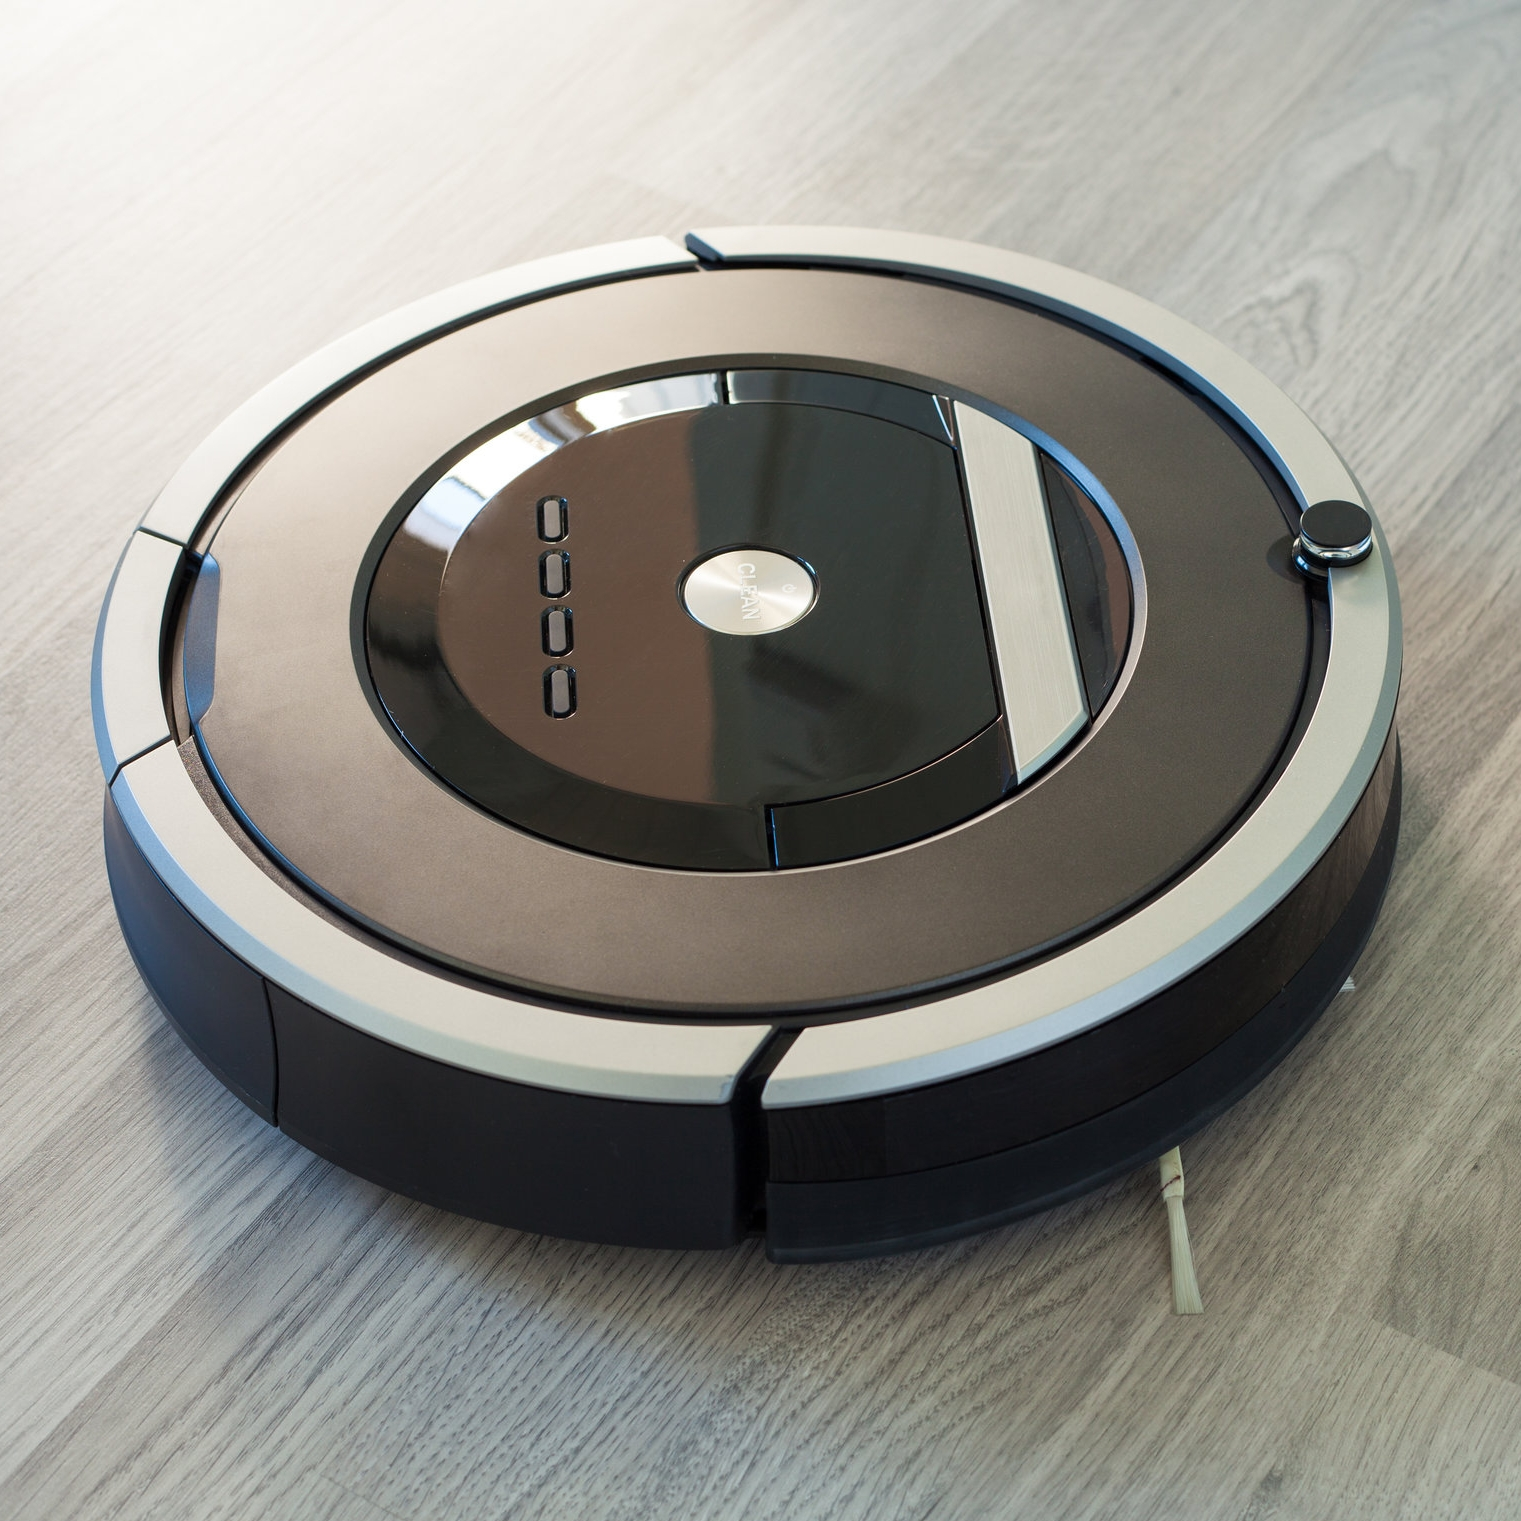 robot-vacuum-cleaner-shutterstock-license_494790925.png